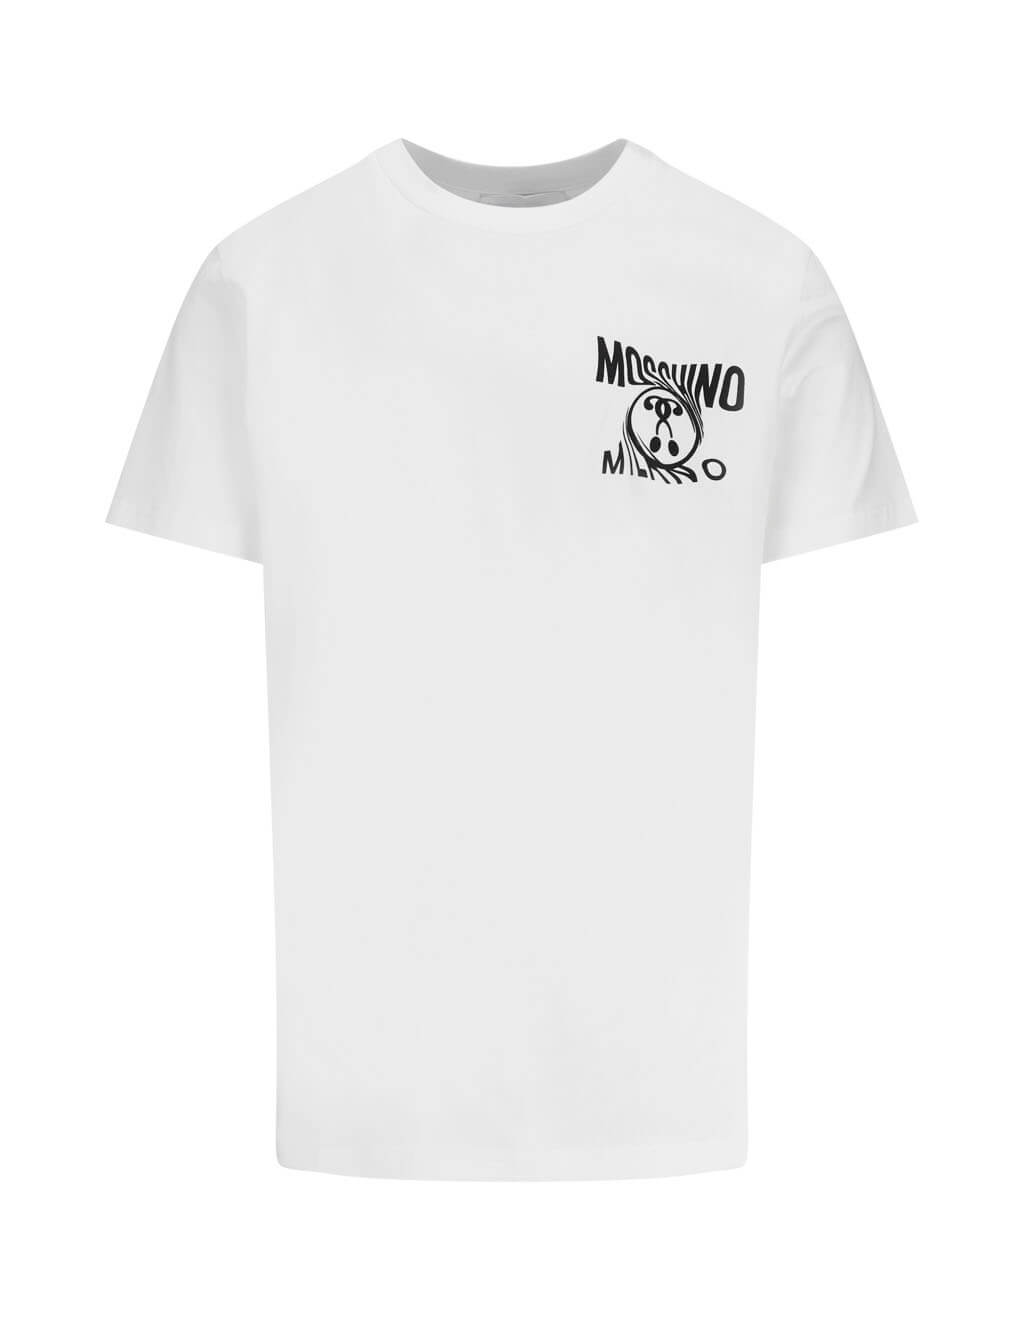 Moschino Men's Twisted Logo T-Shirt in White A0719.2401001